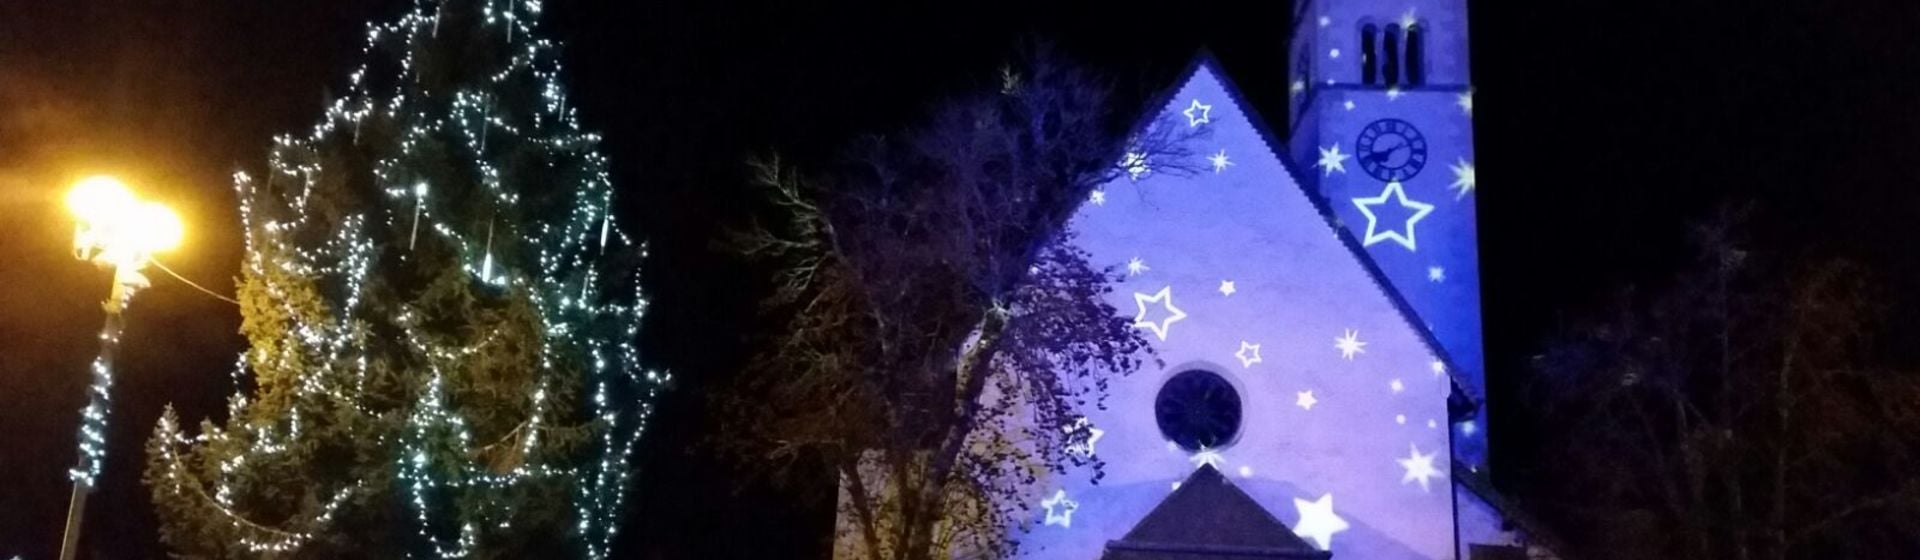 Christmas in Arabba in the heart of the Dolomites